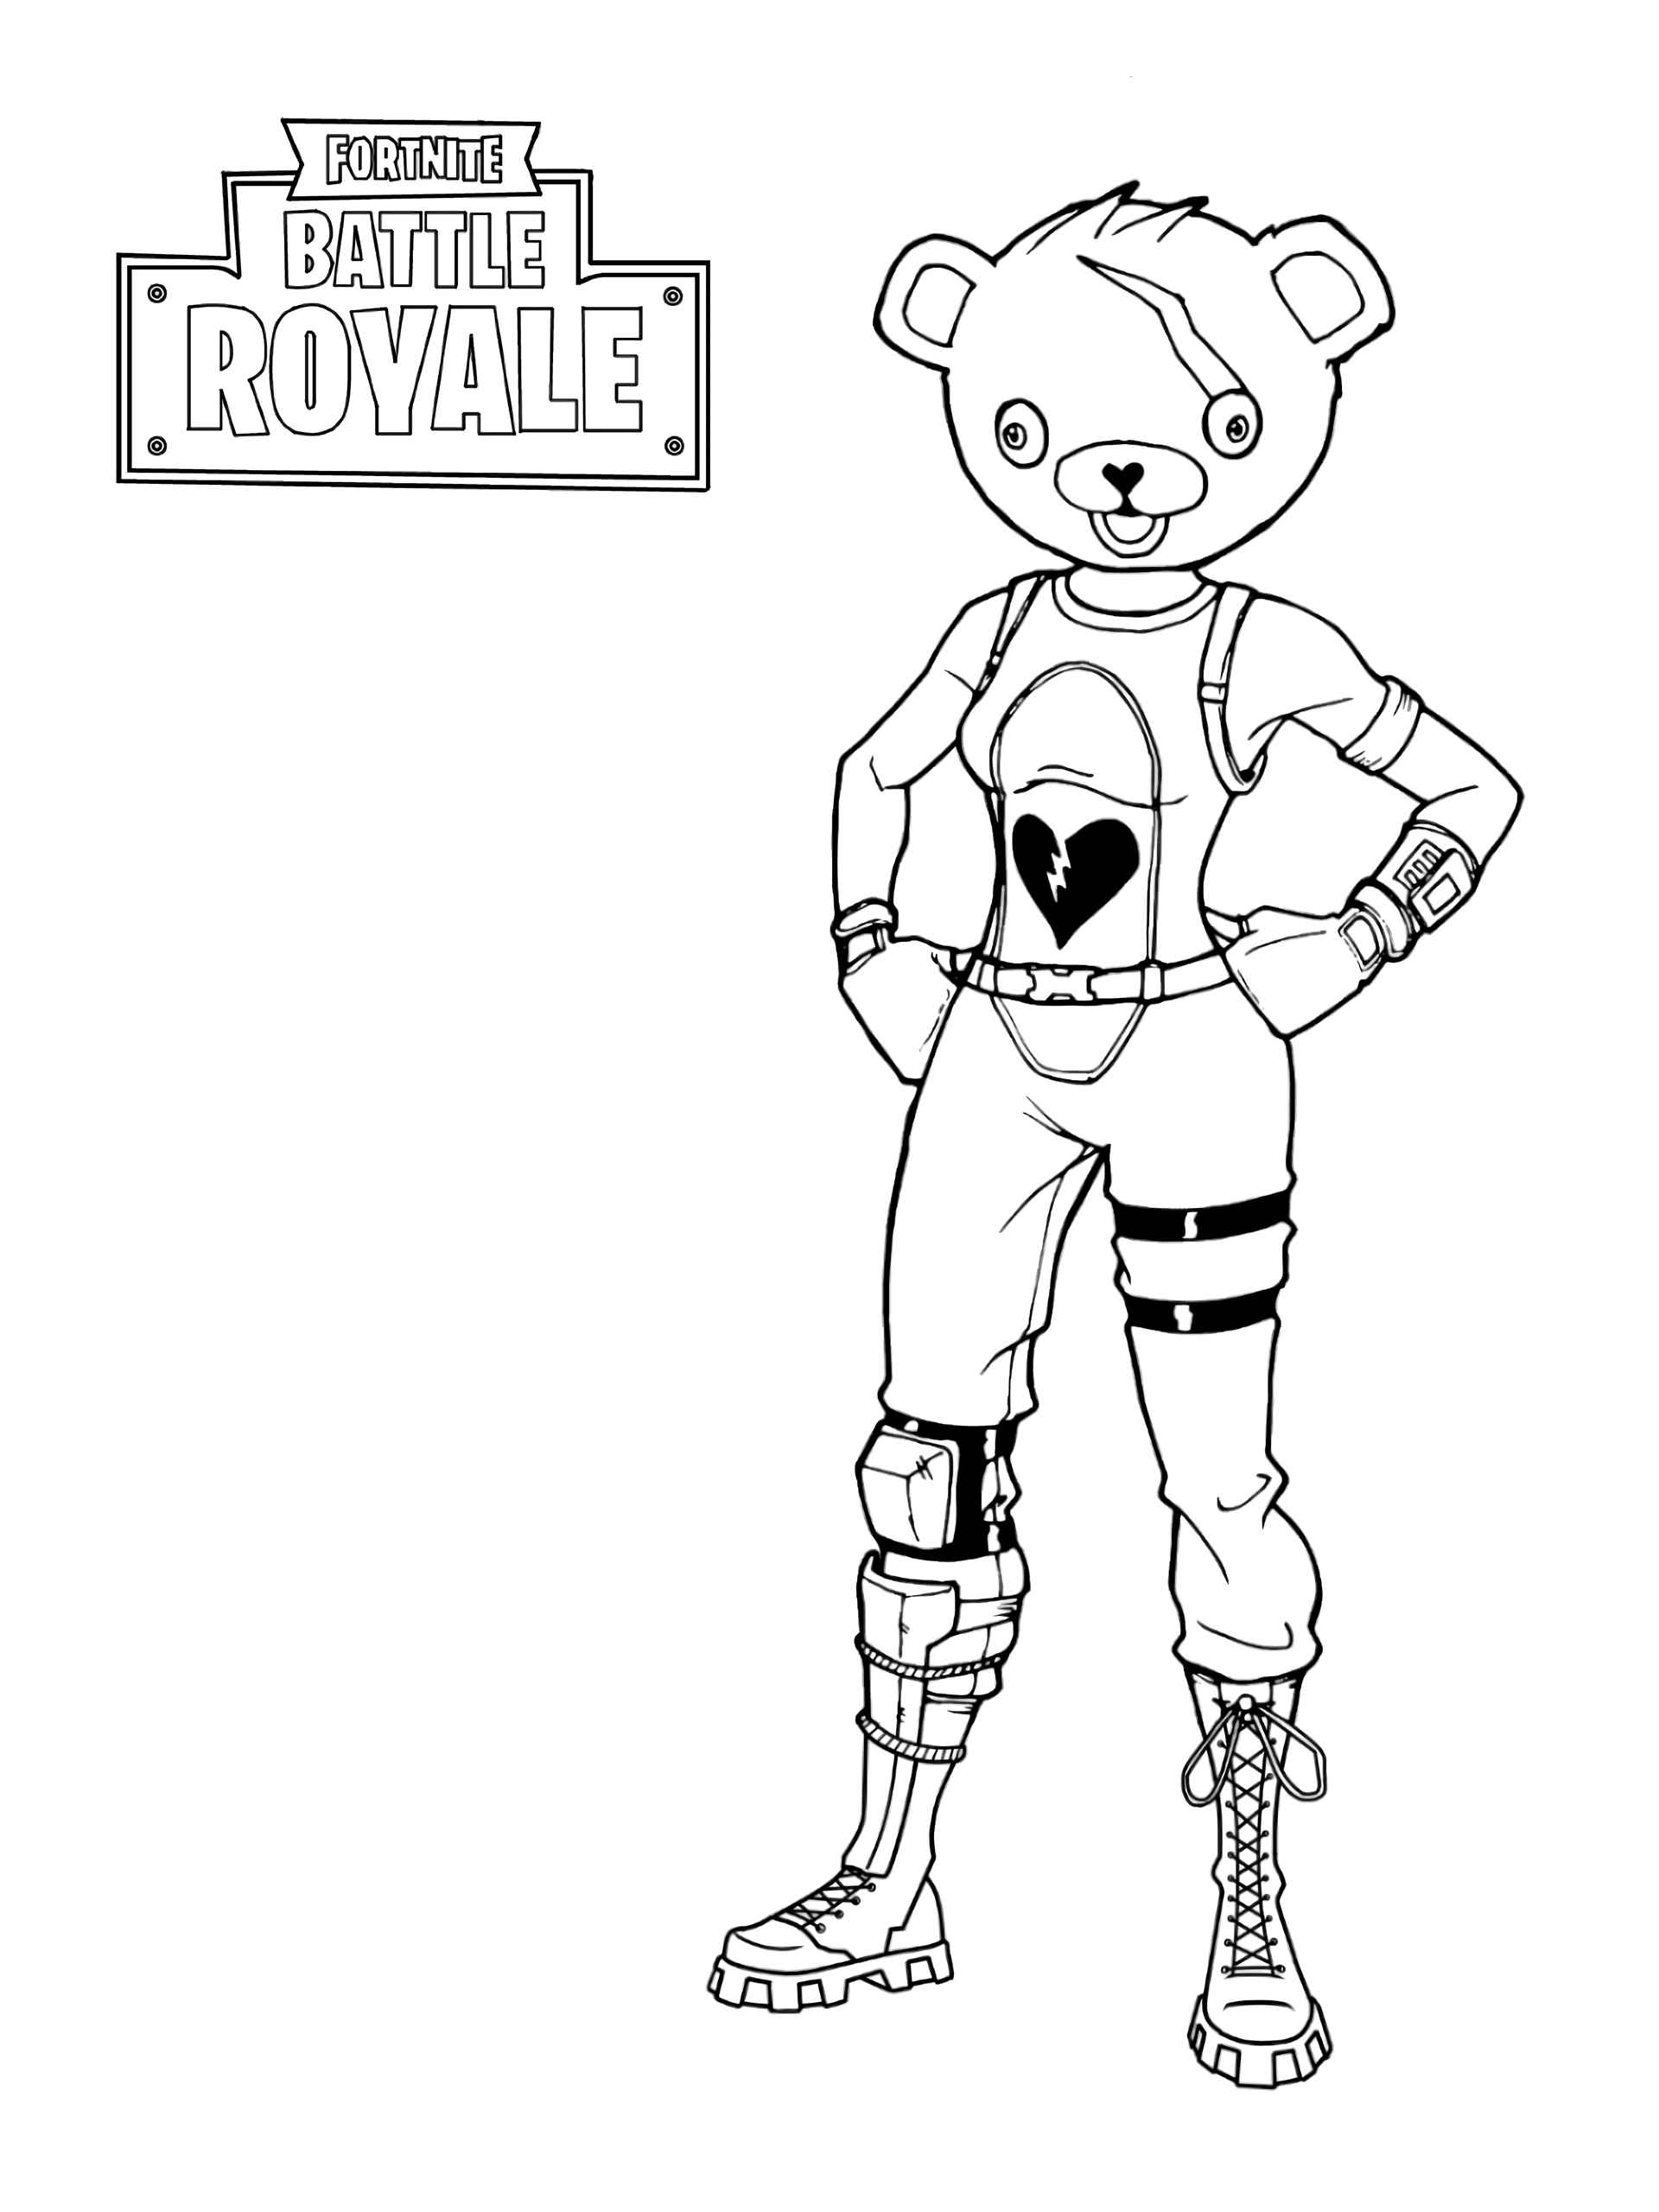 Bear Skin From The Game Fortnite Coloring Page